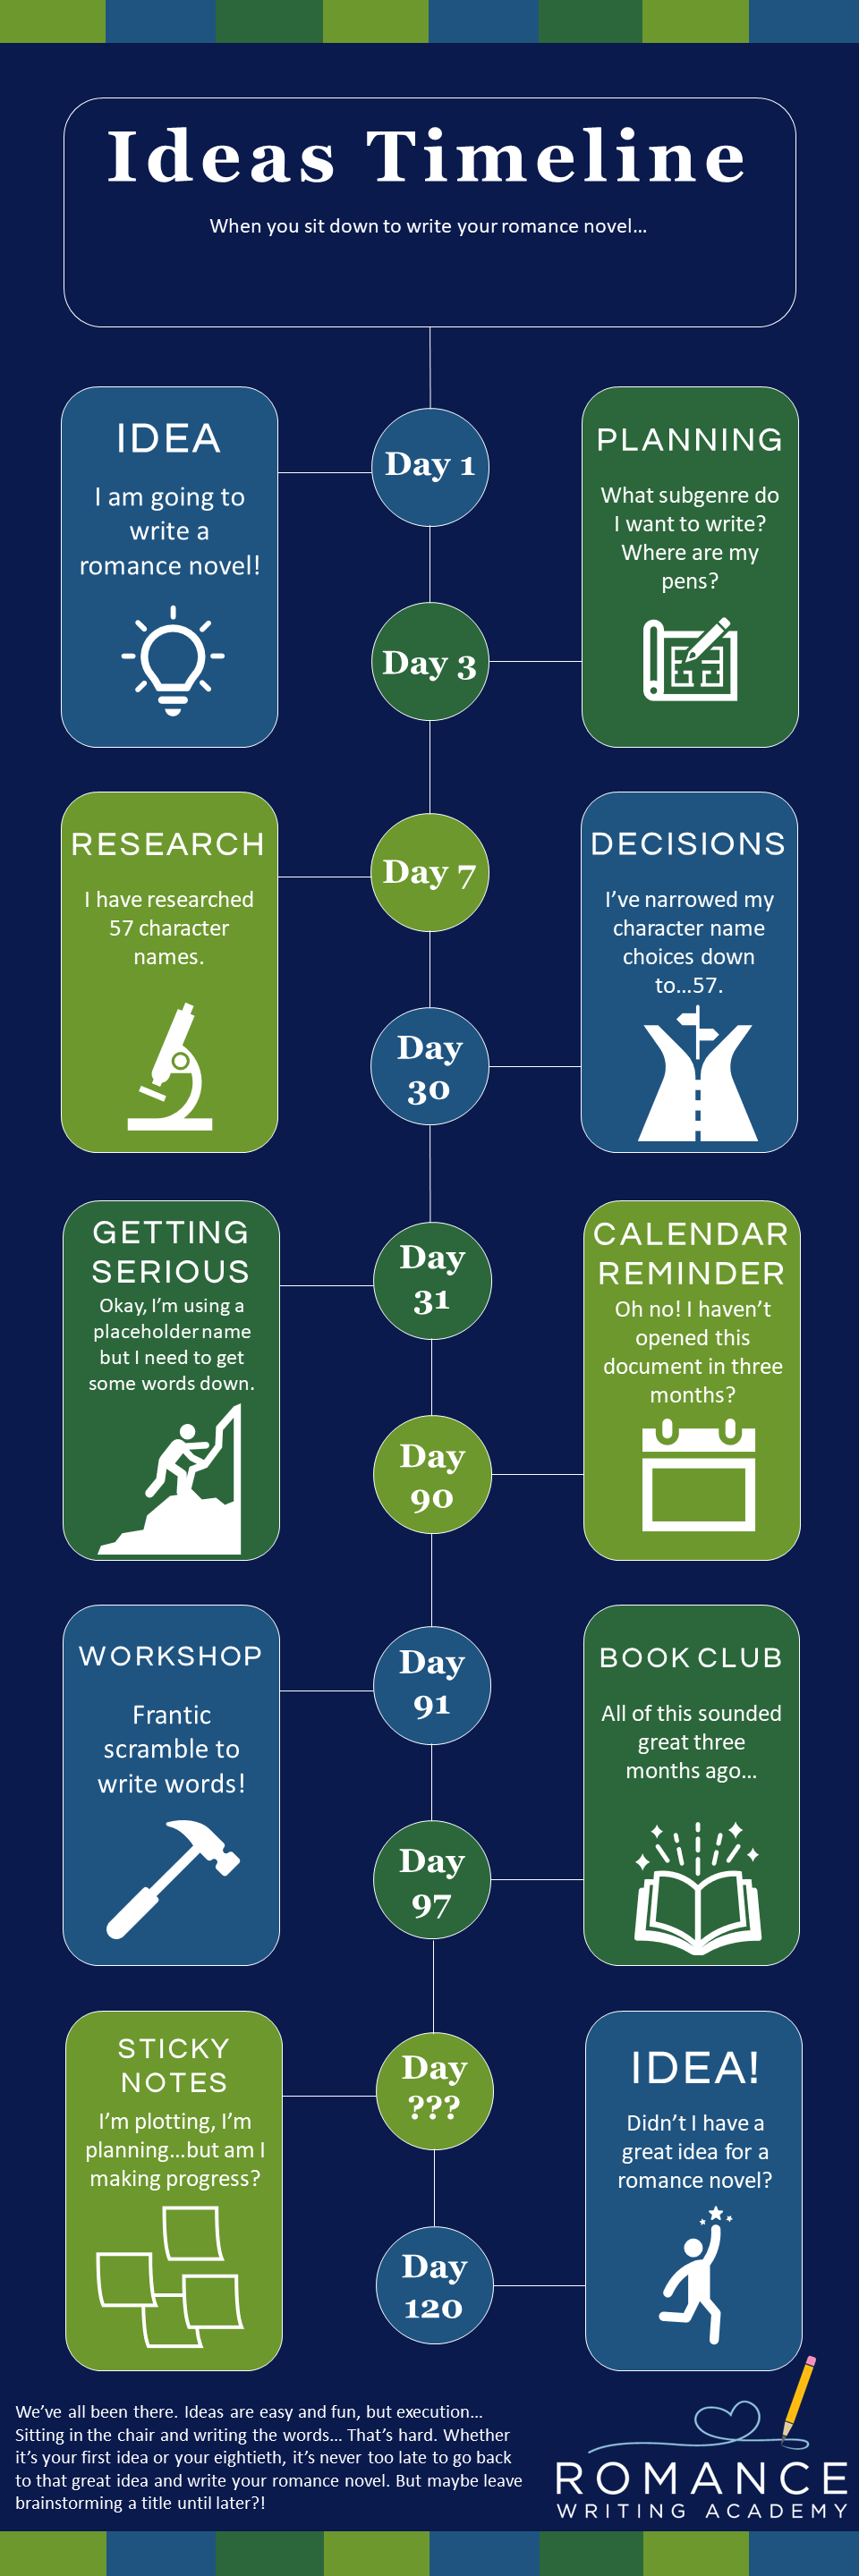 Ideas Timeline: When you sit down to write your romance novel. [Infographic]